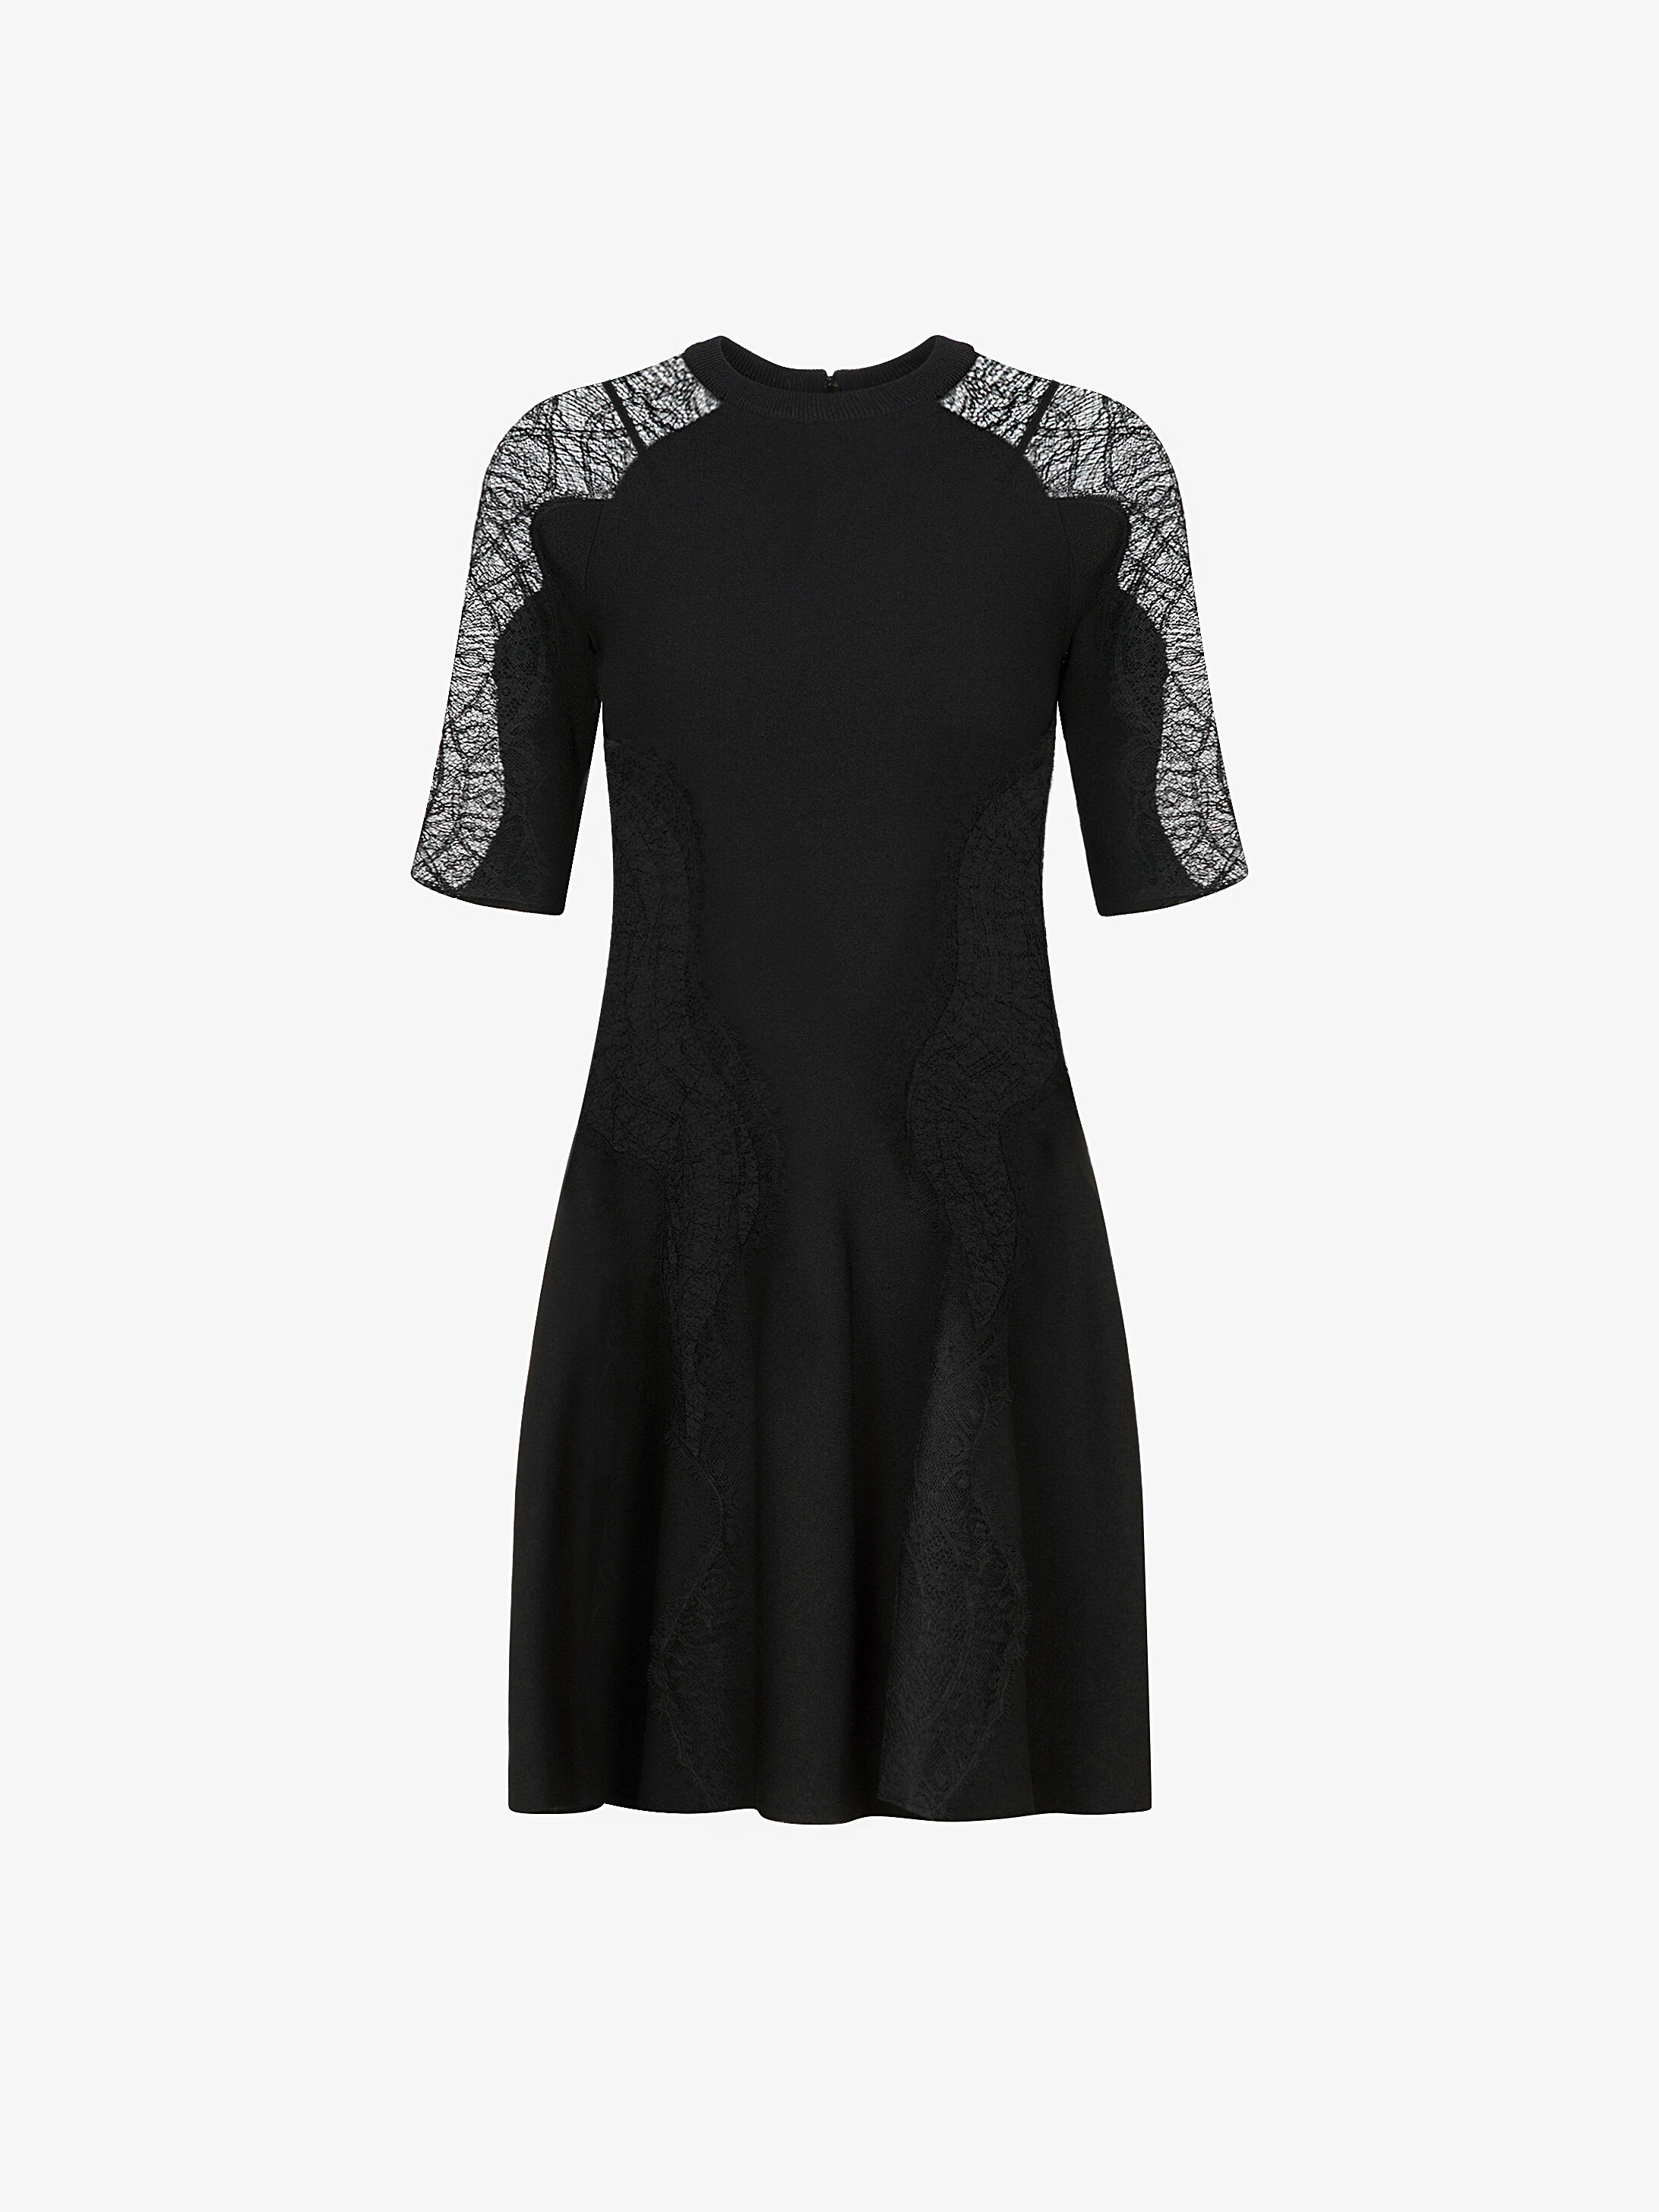 Gored dress in crêpe de viscose and lace